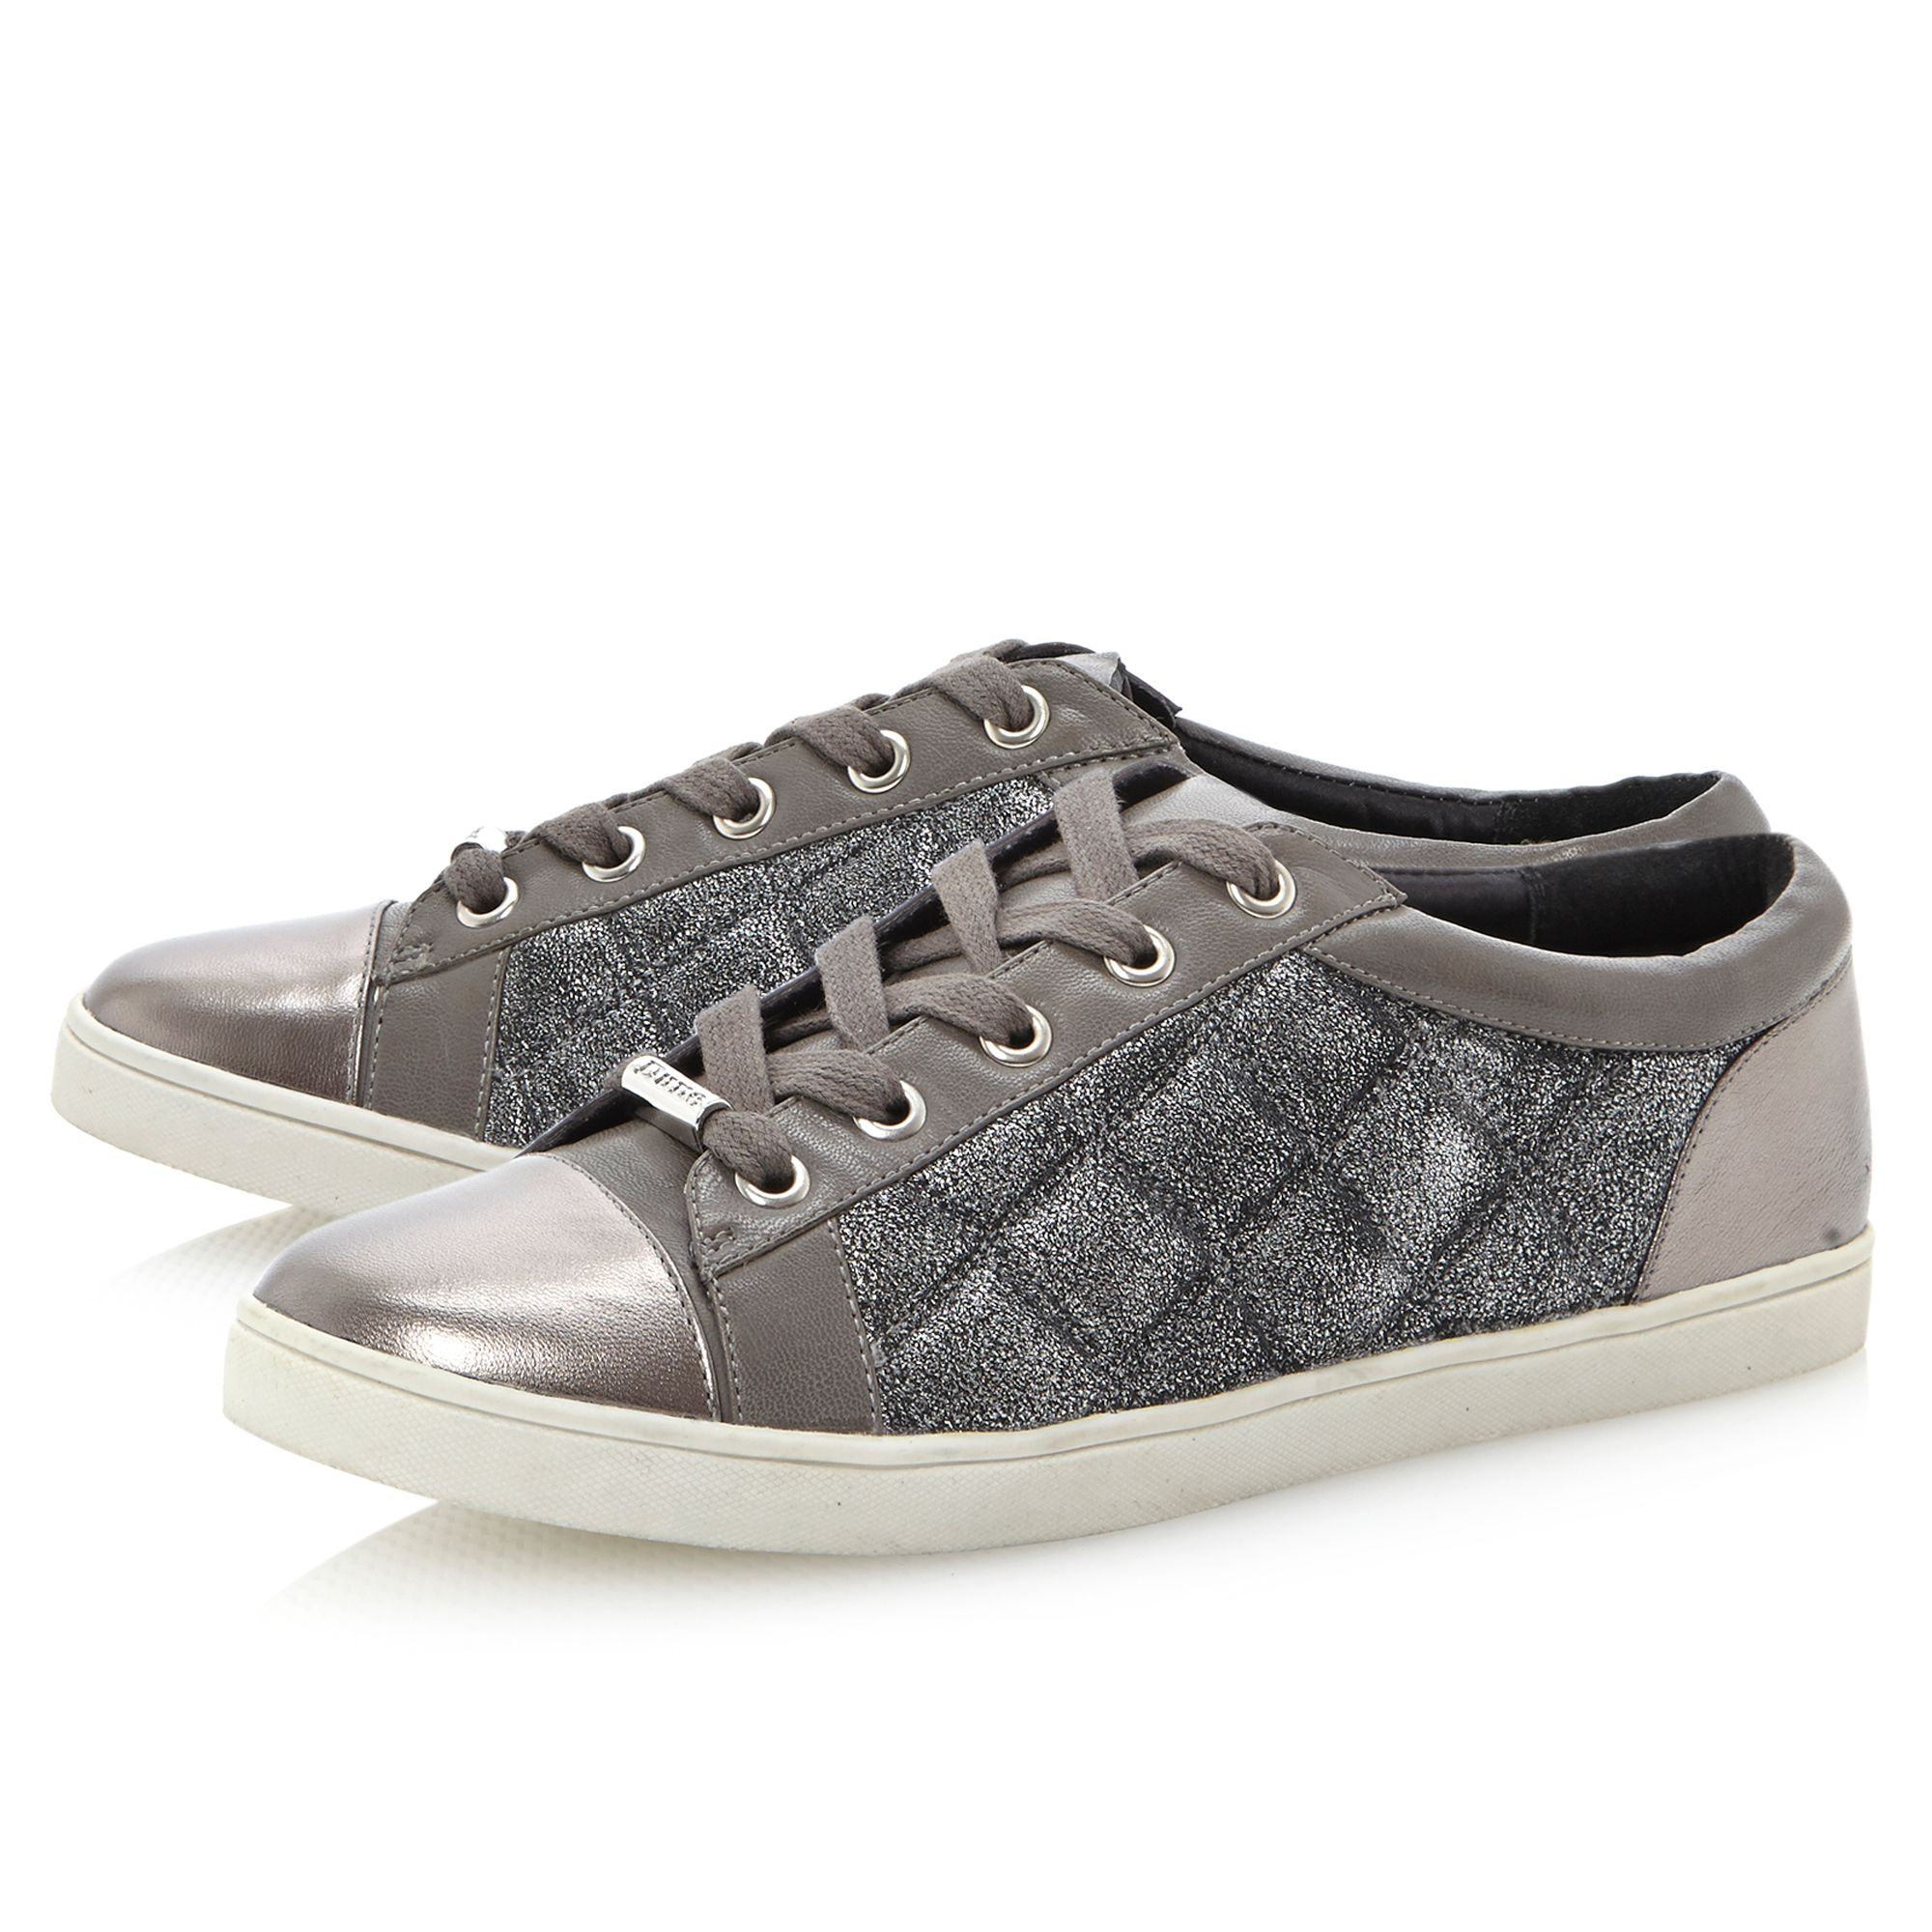 Dune Lessaflat Lace Up Sneaker Shoes in Grey (Grey)